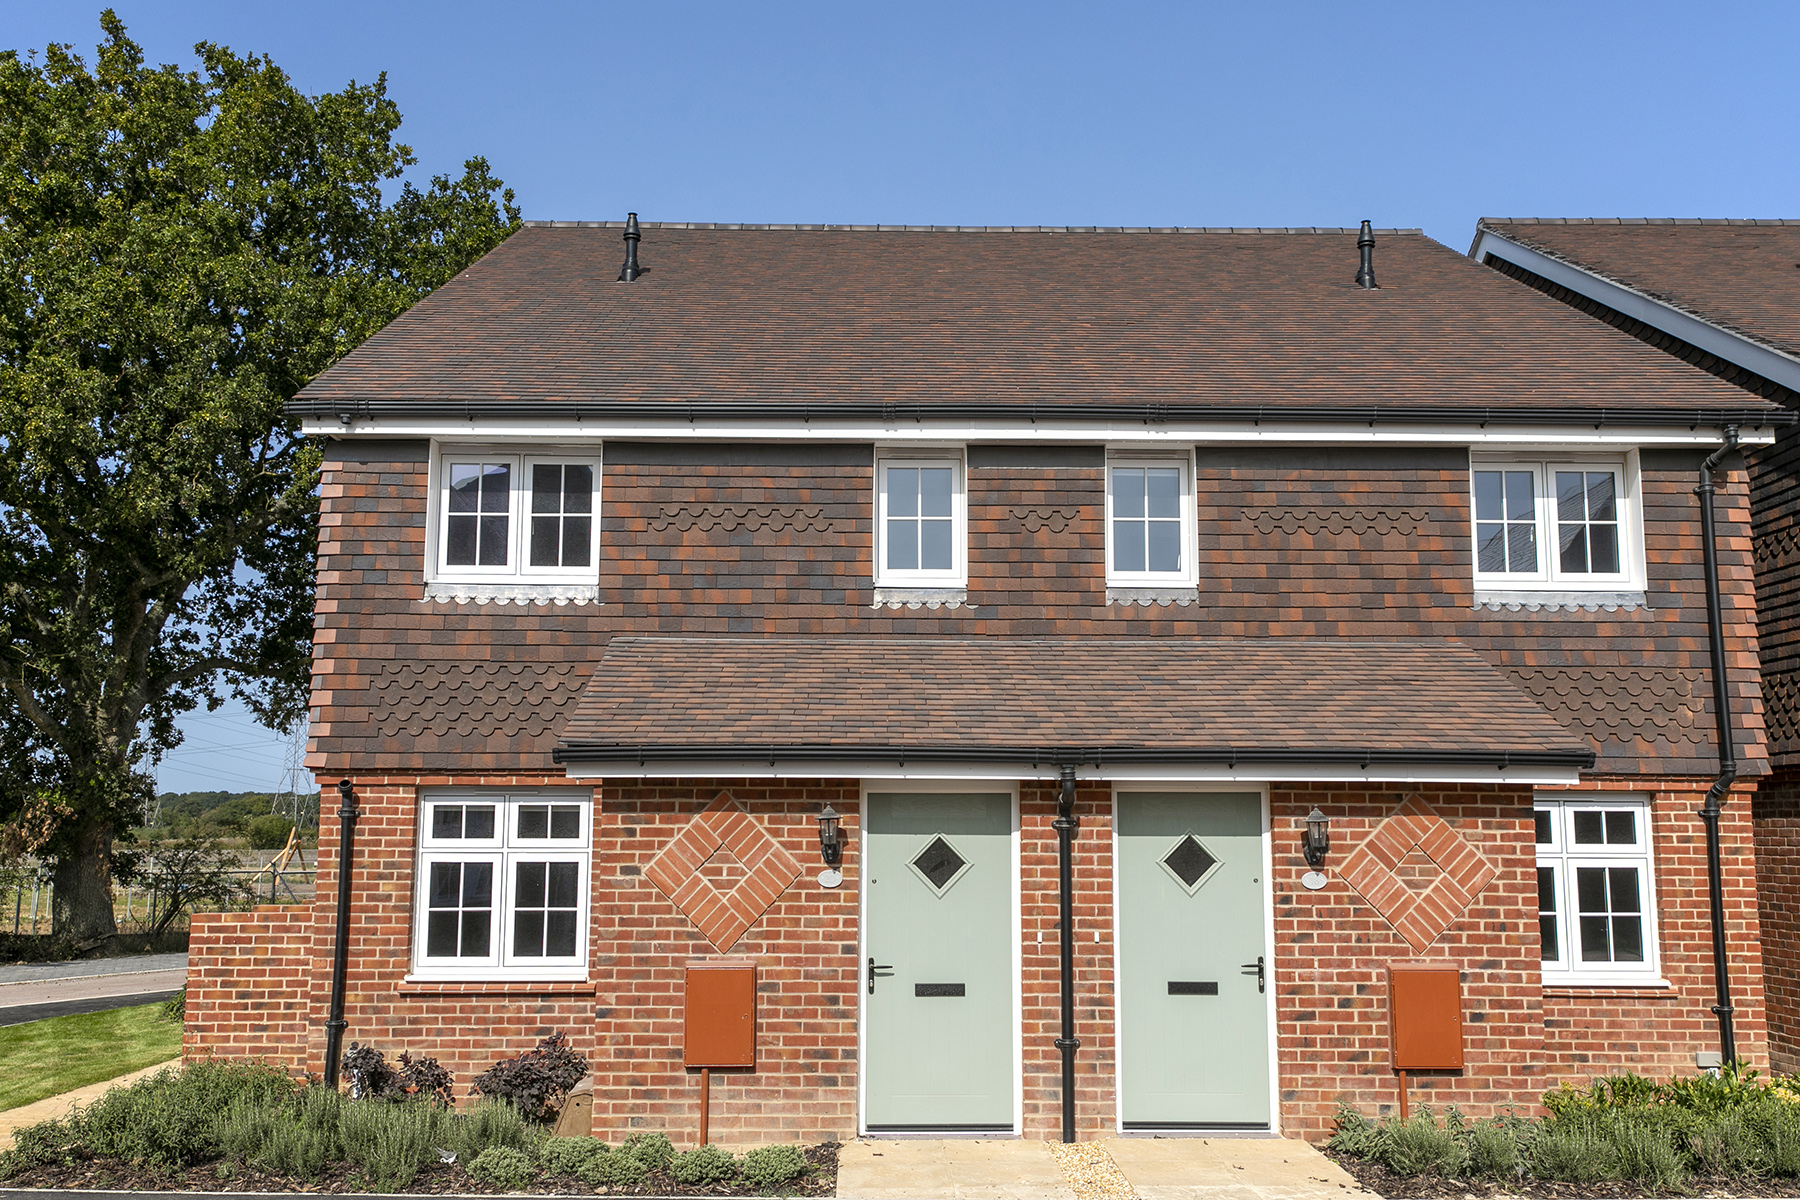 Berewood Redrow Waterlooville